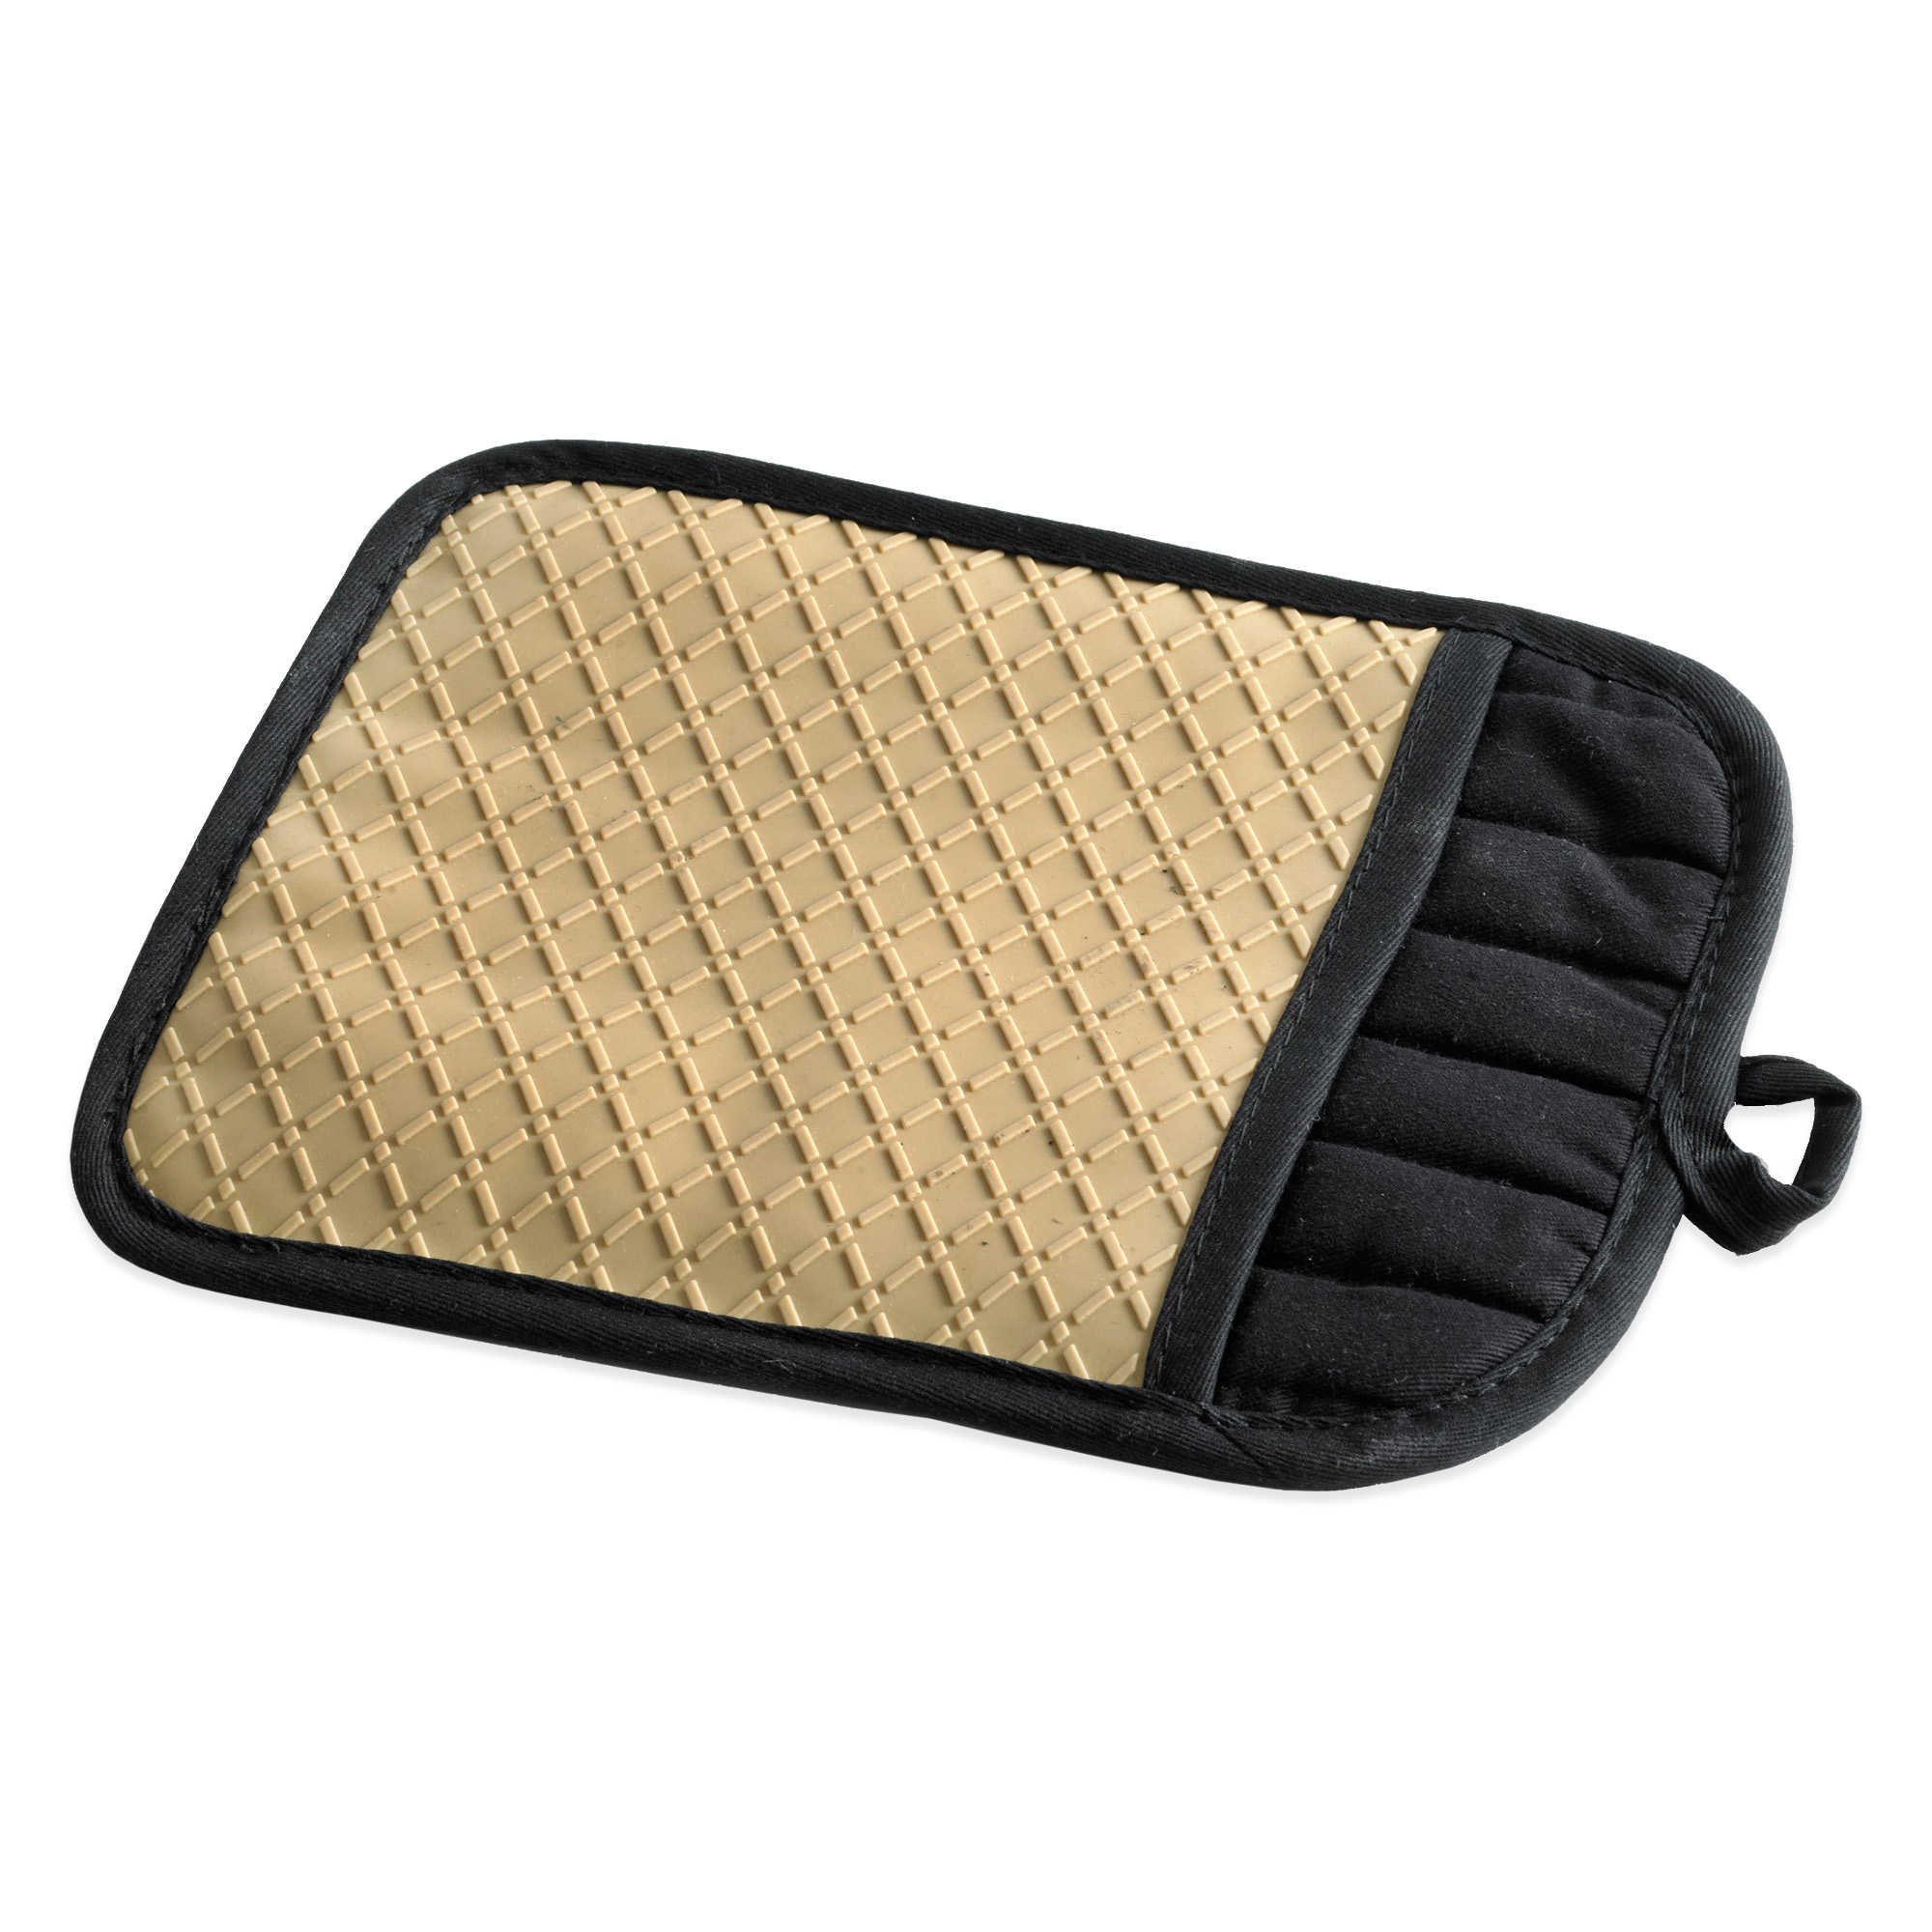 Pot Holder. Silicone Quilted Crafted from 100% Silicone Lining and Safe to use up to 500 degrees Fahrenheit Pack of 2,(Biscotti)